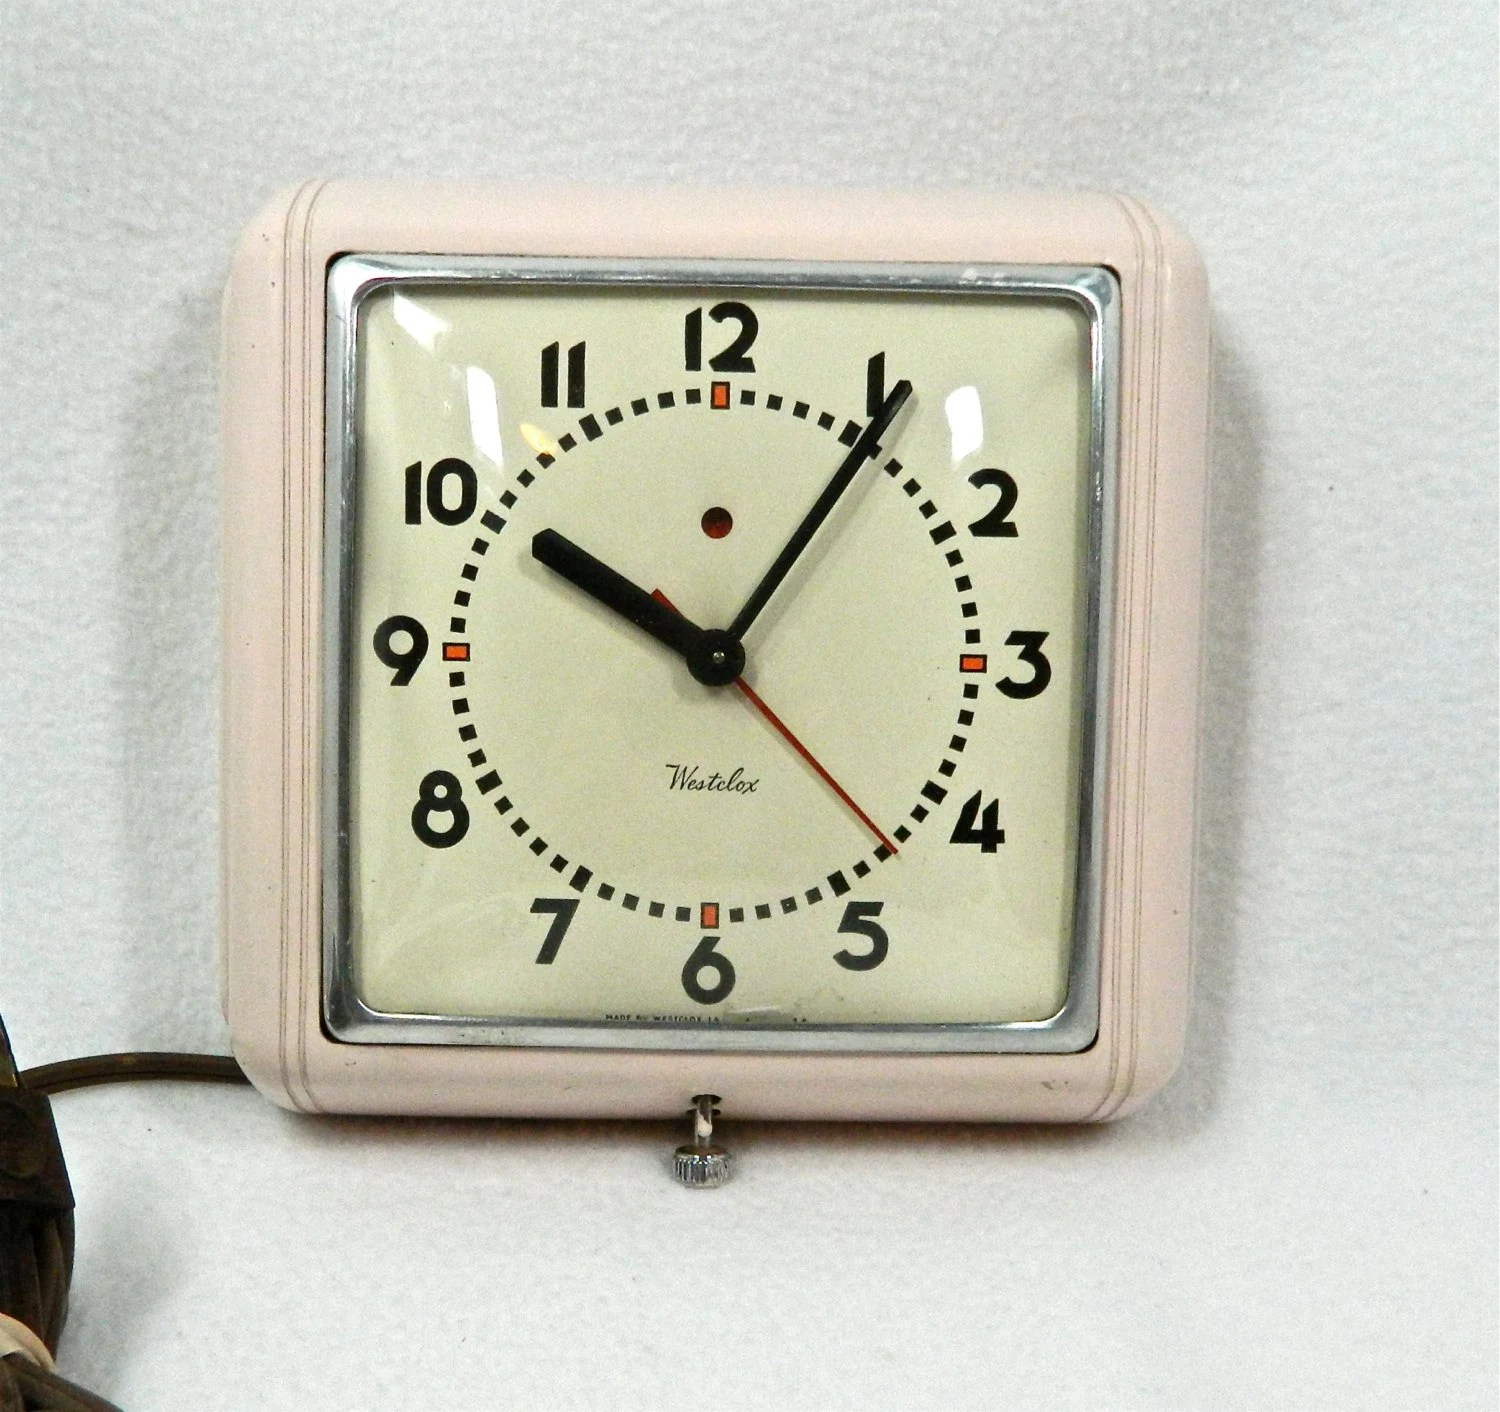 Atomic Wall Clocks Made In Usa Vintage Electric Wall Clock By Westclox Bold Numbers And Hands